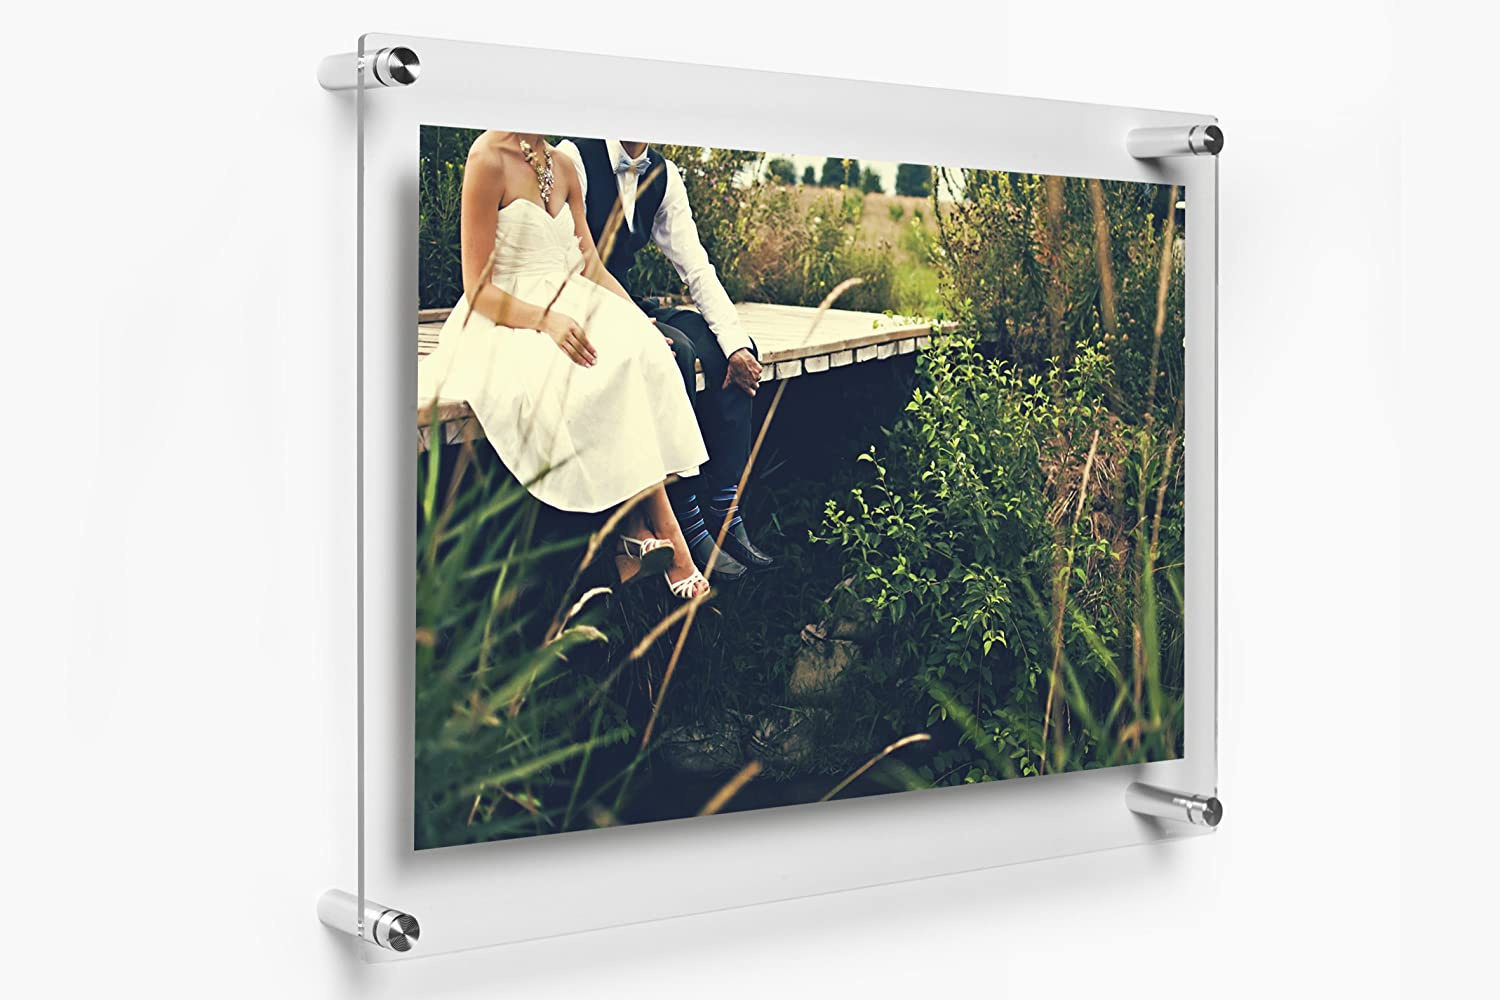 Amazon.com: Wexel Art 15x18-Inch Double Panel Clear Acrylic Floating ...